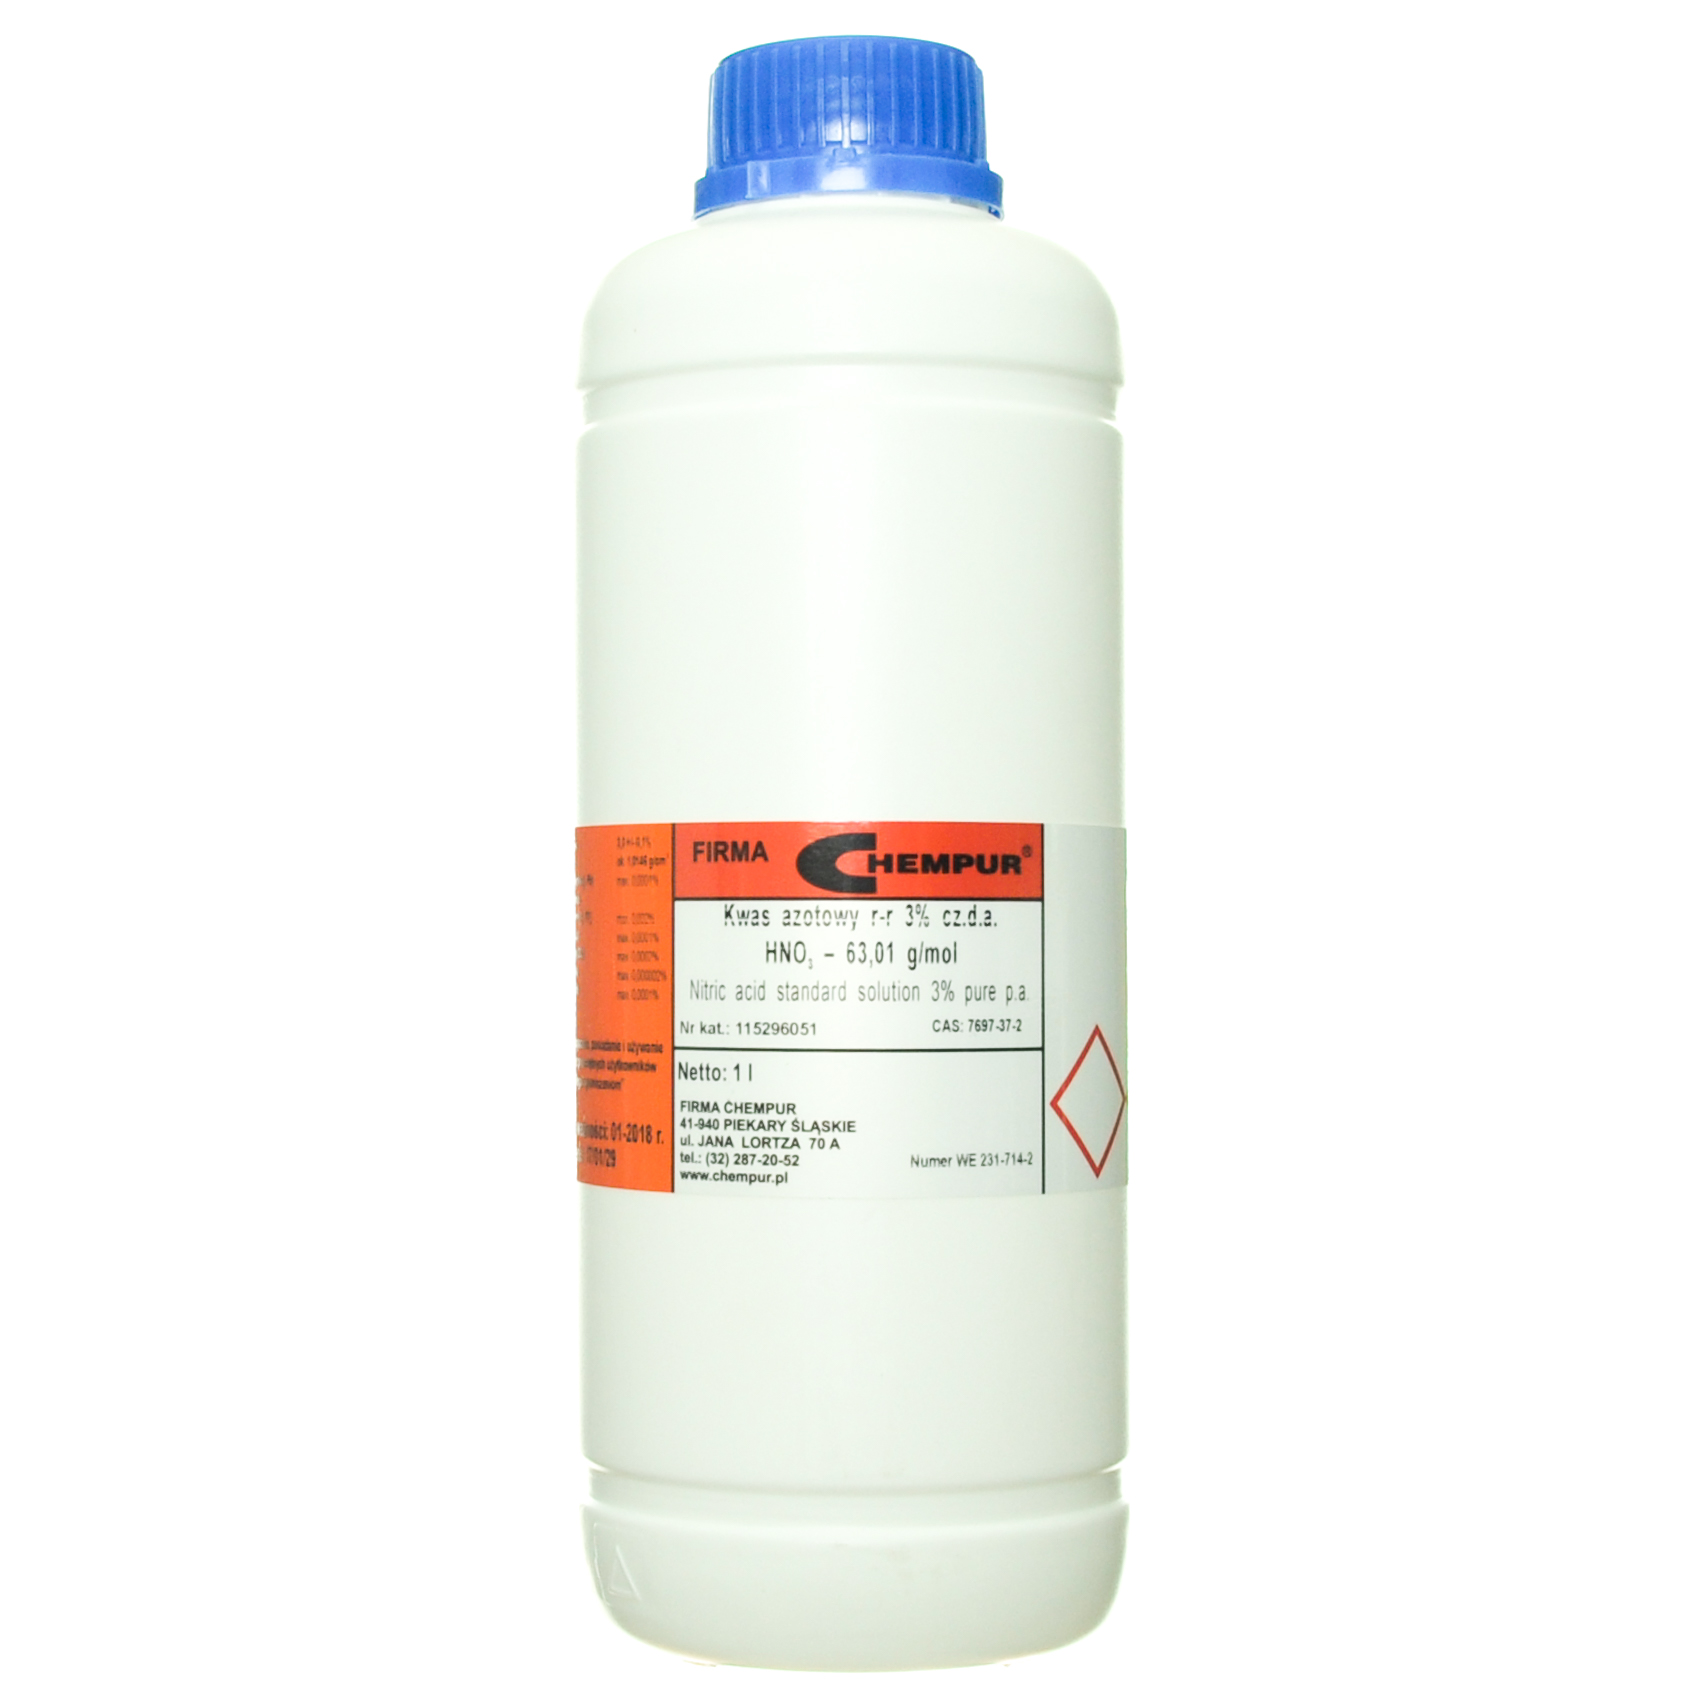 Nitric acid standard solution 3% pure p.a.